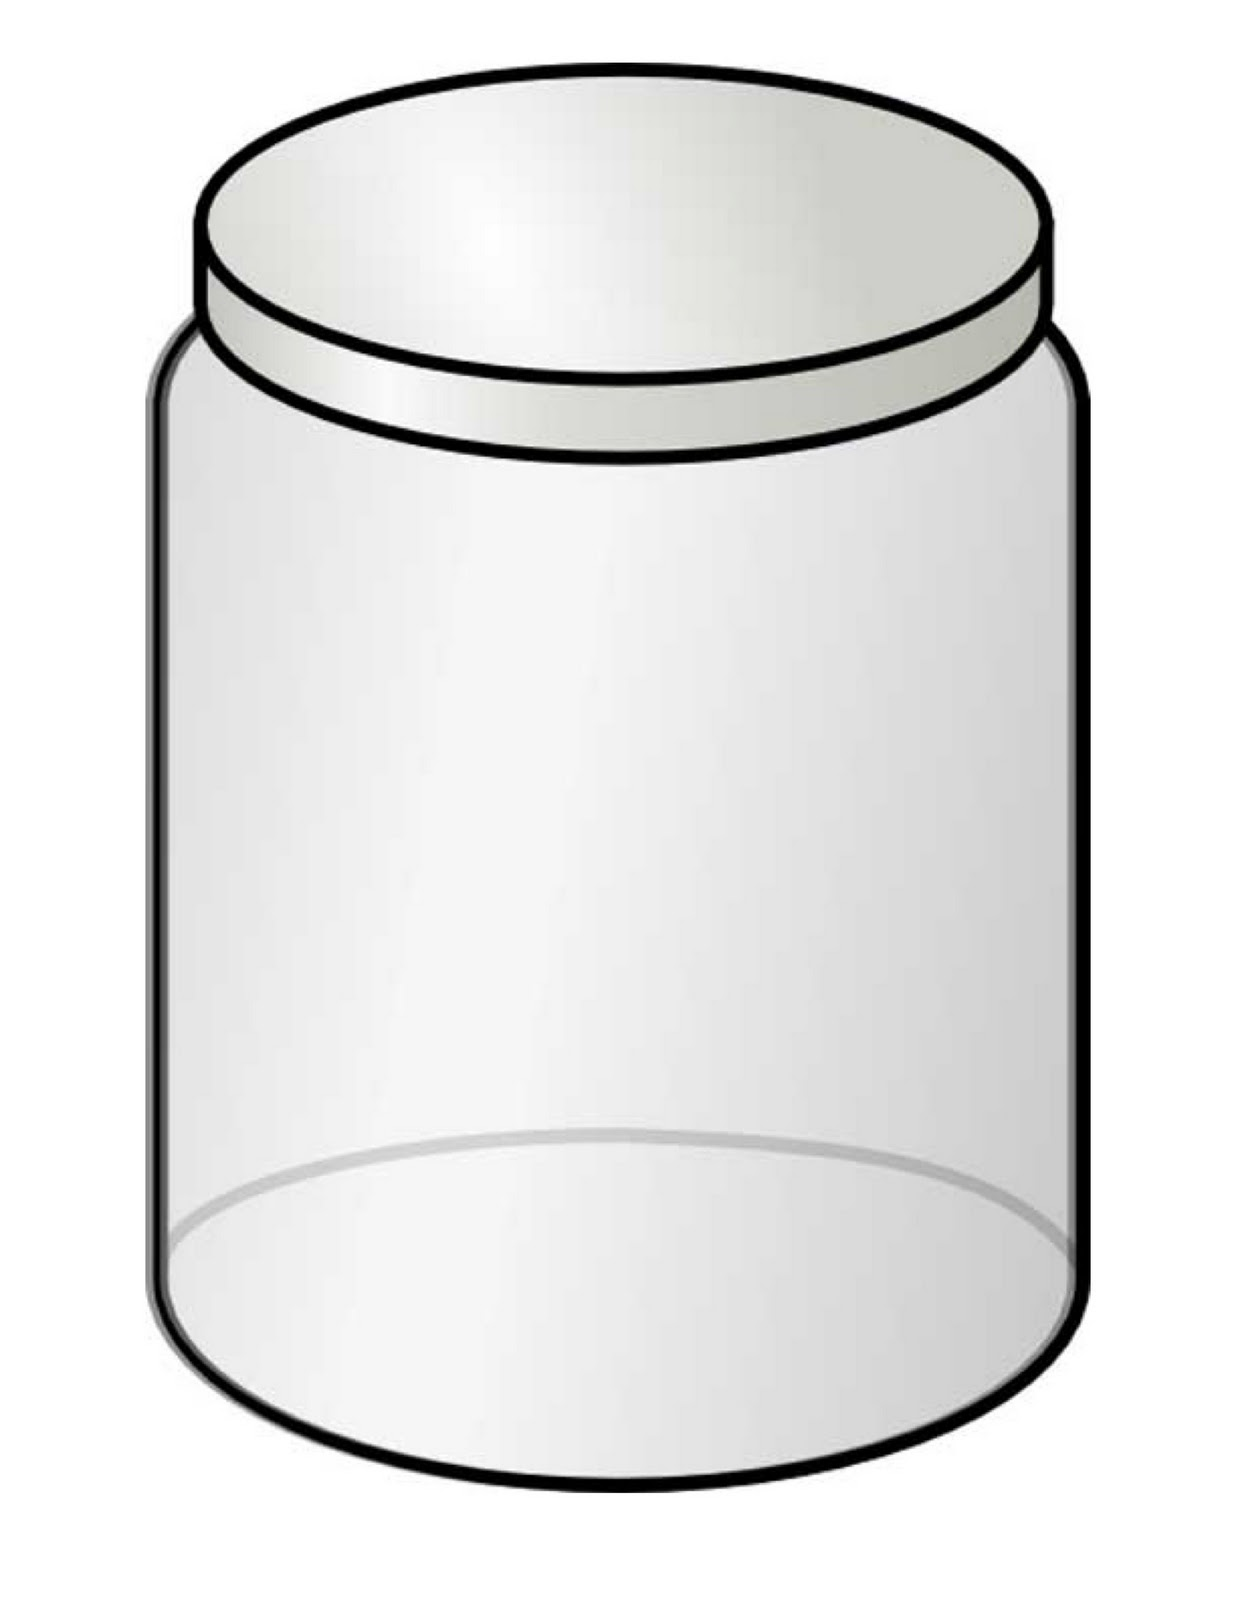 Ms Carlie S Little Learners Preschool Letter F Games Jar Coloring Page